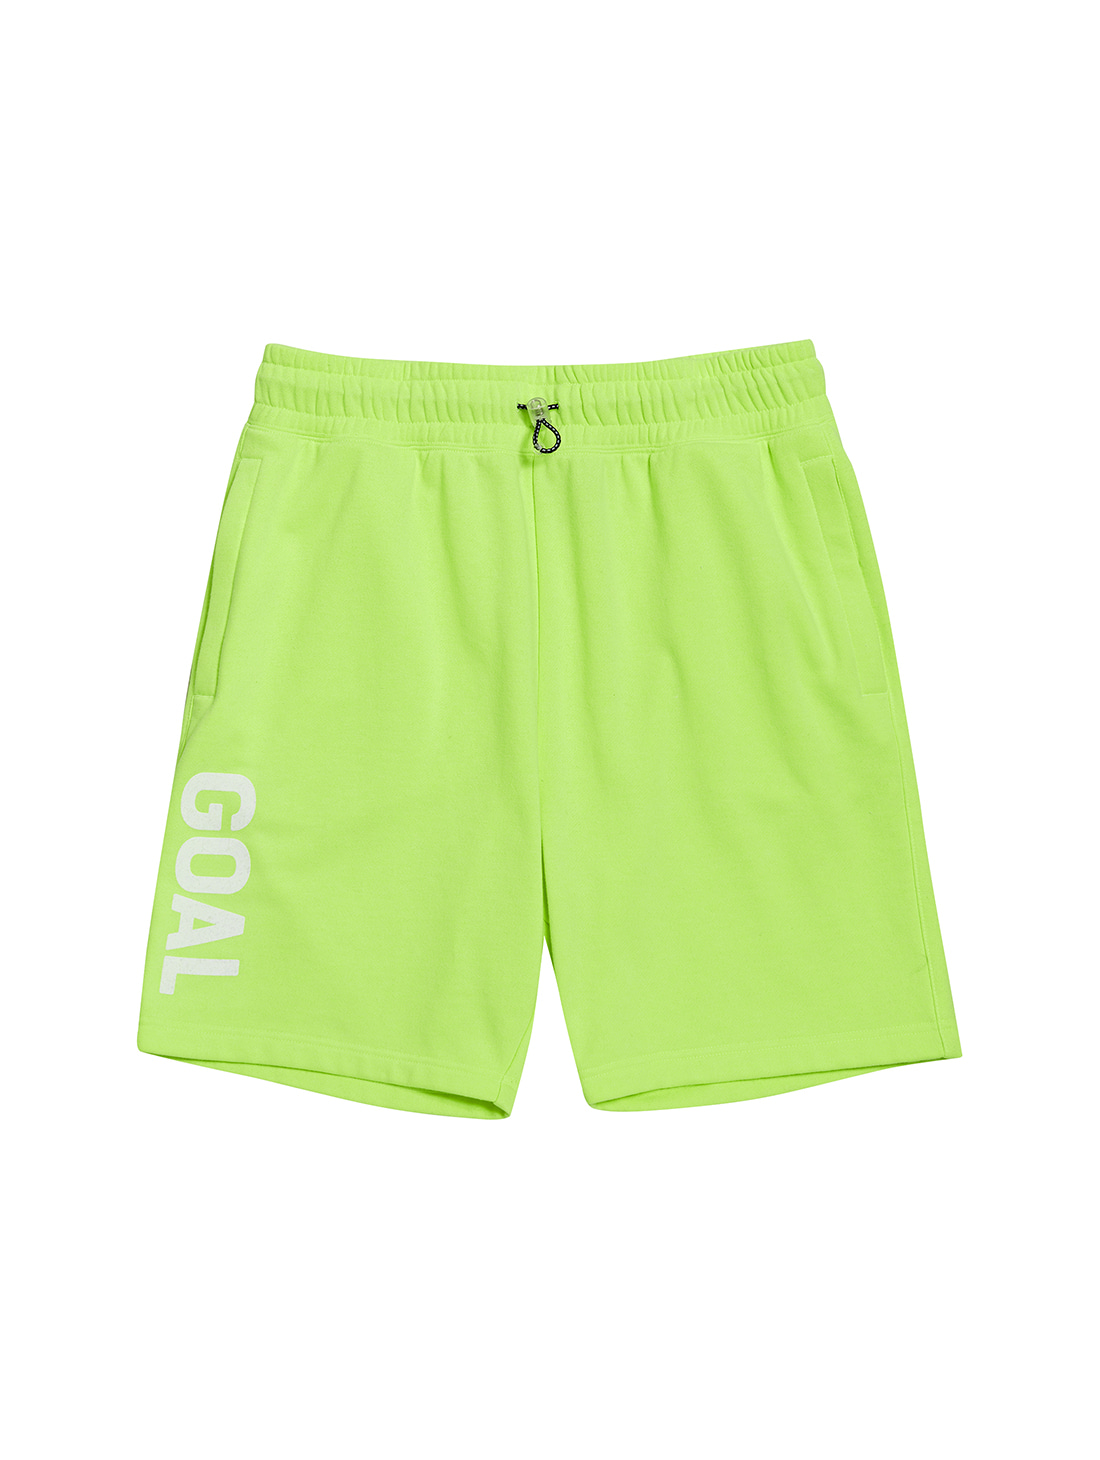 FLOCKING HALF PANTS - LIME YELLOW